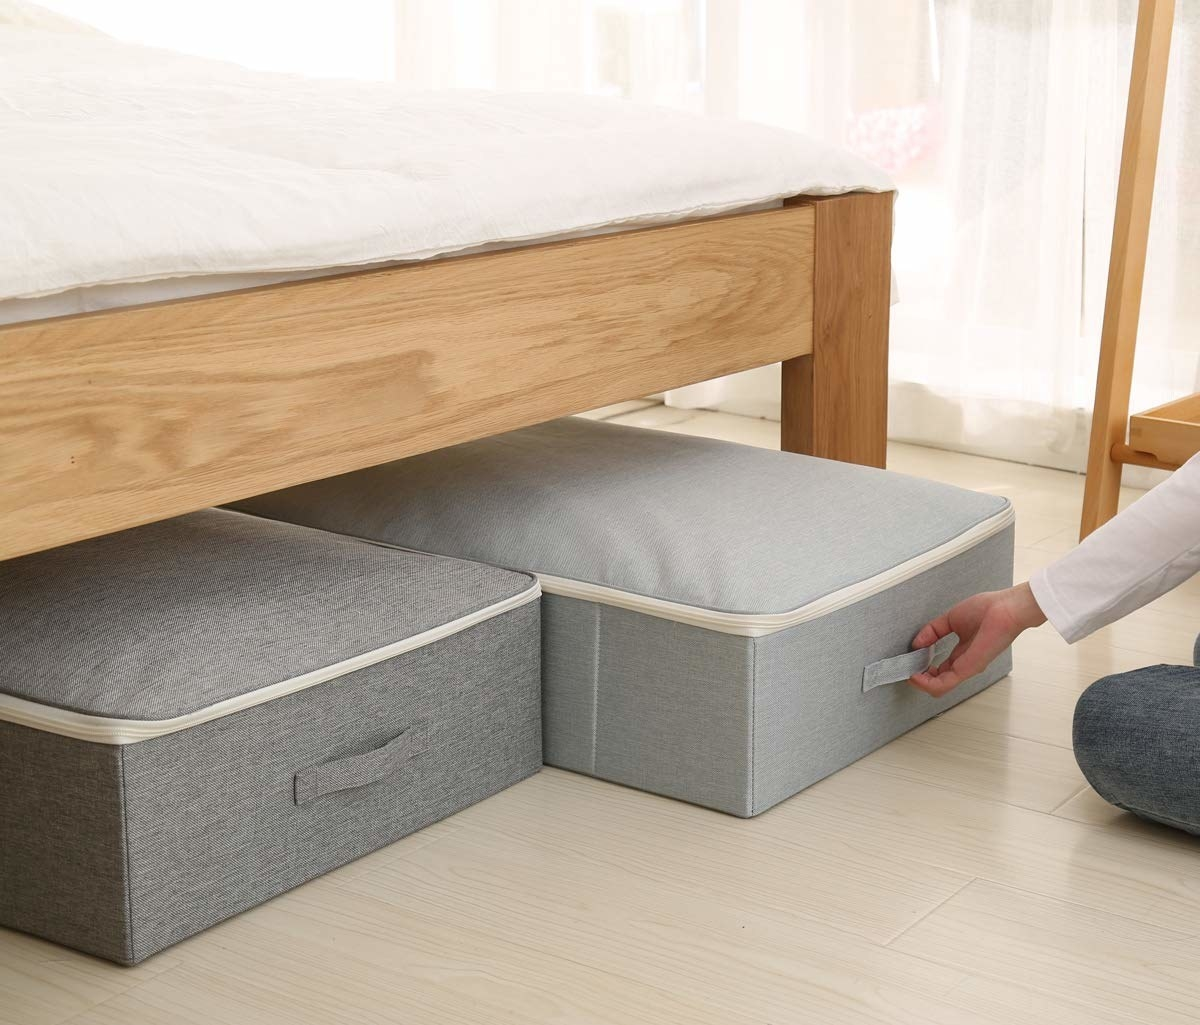 A person sliding the storage box under a bed